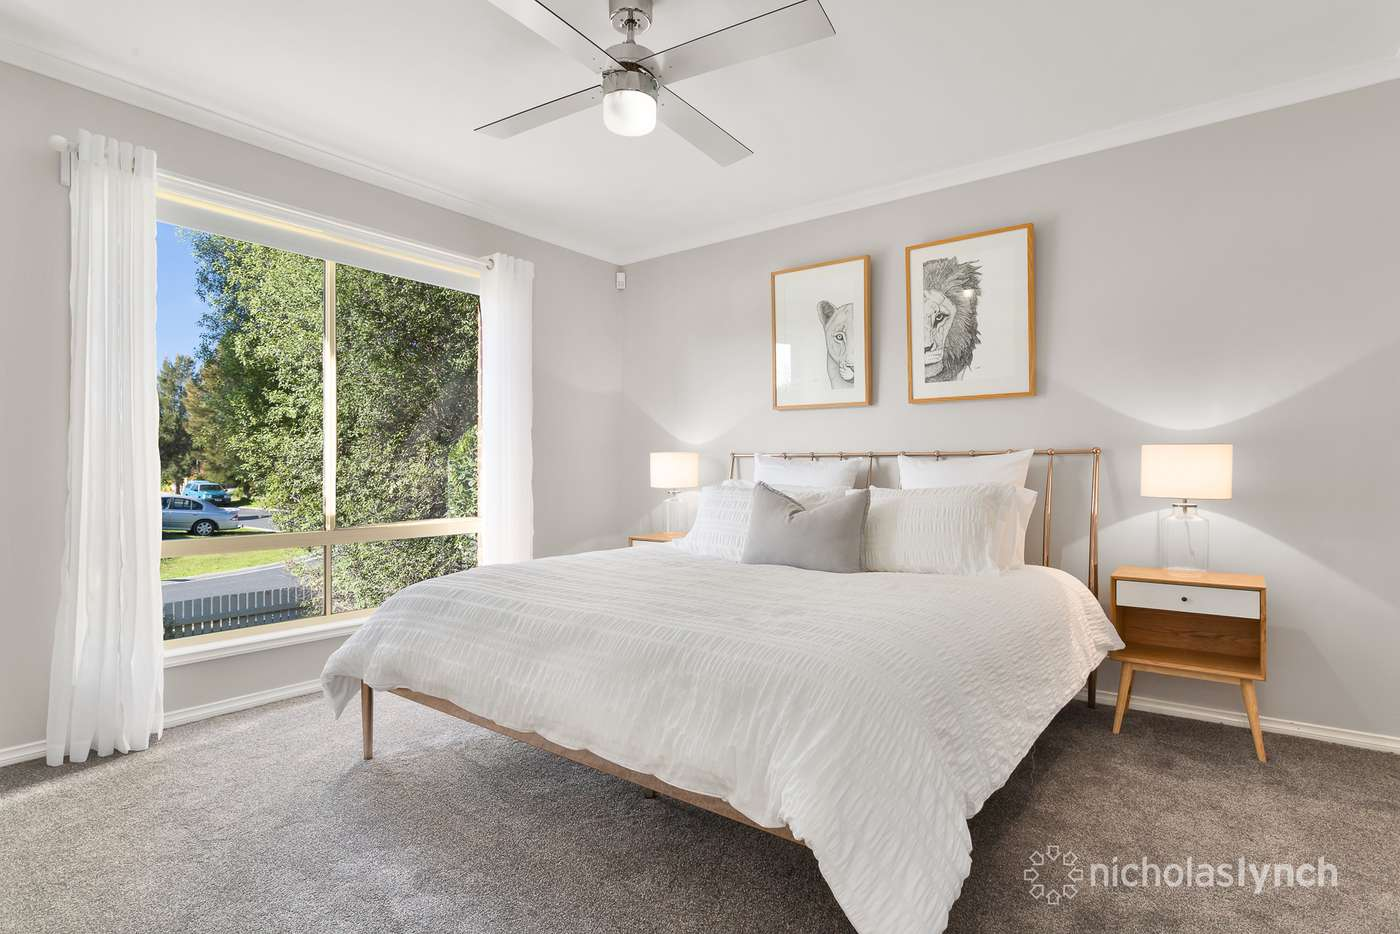 Fifth view of Homely house listing, 22 Lavender Lane, Baxter VIC 3911